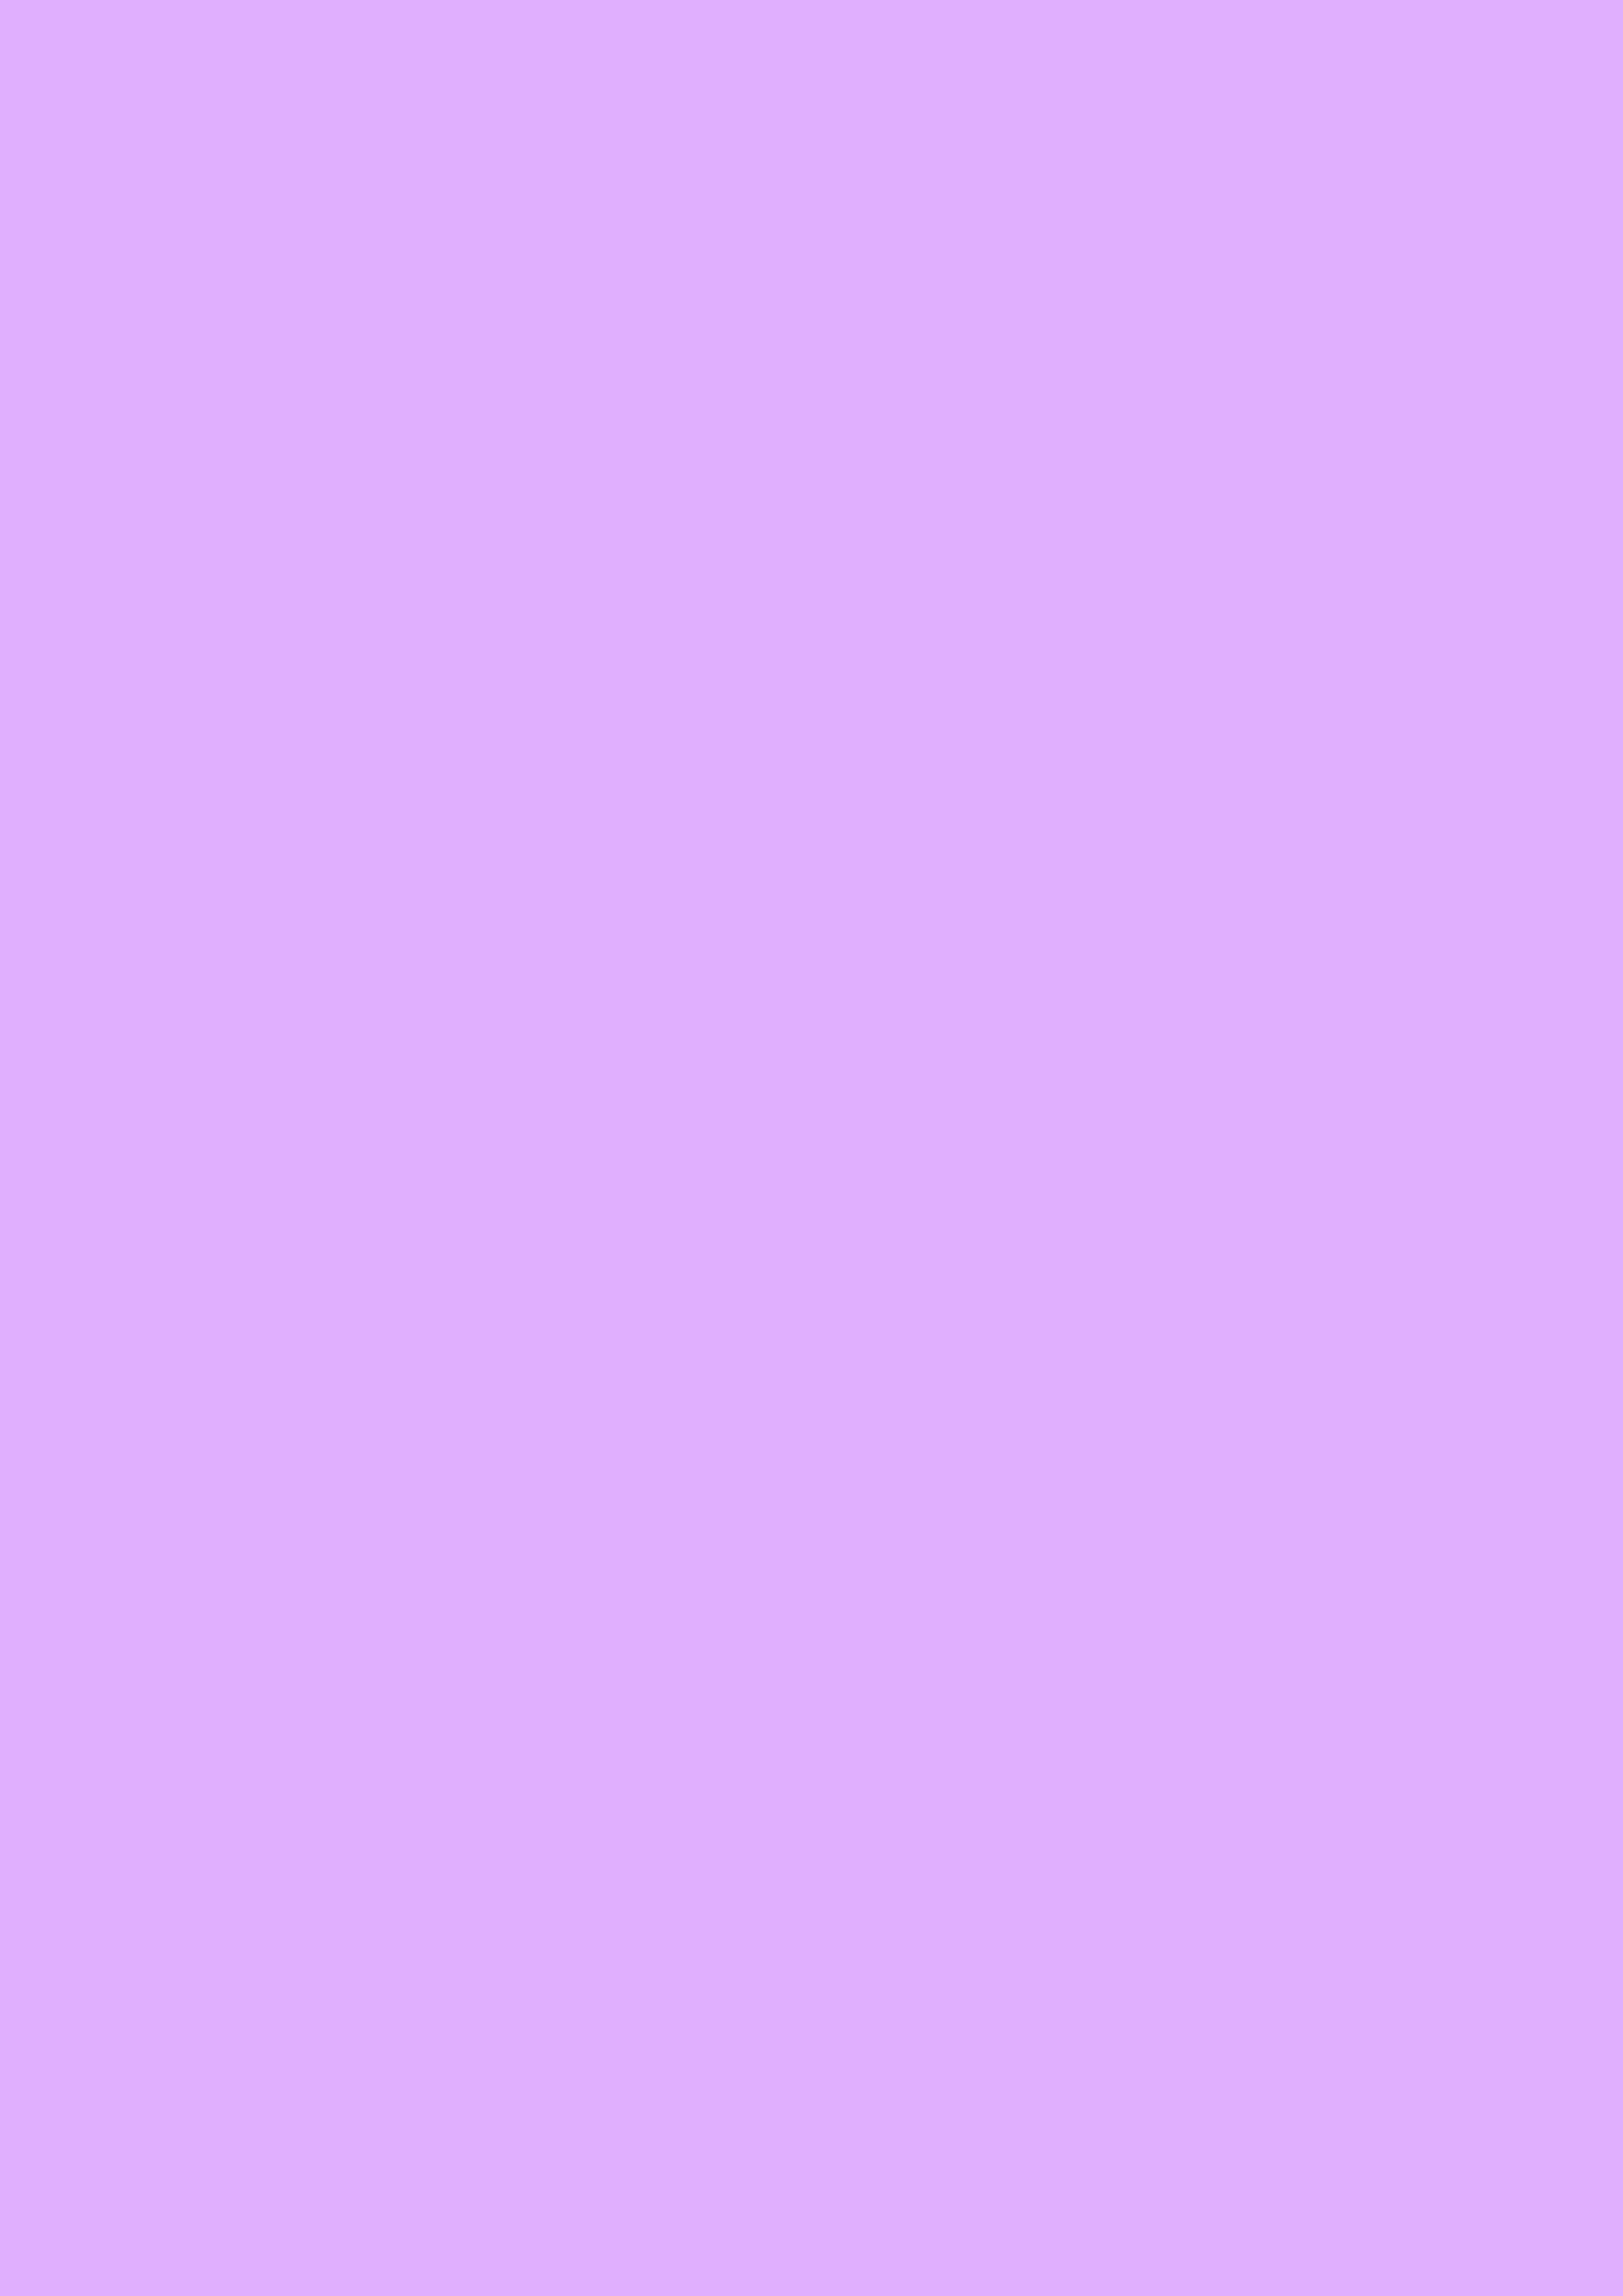 2480x3508 Mauve Solid Color Background